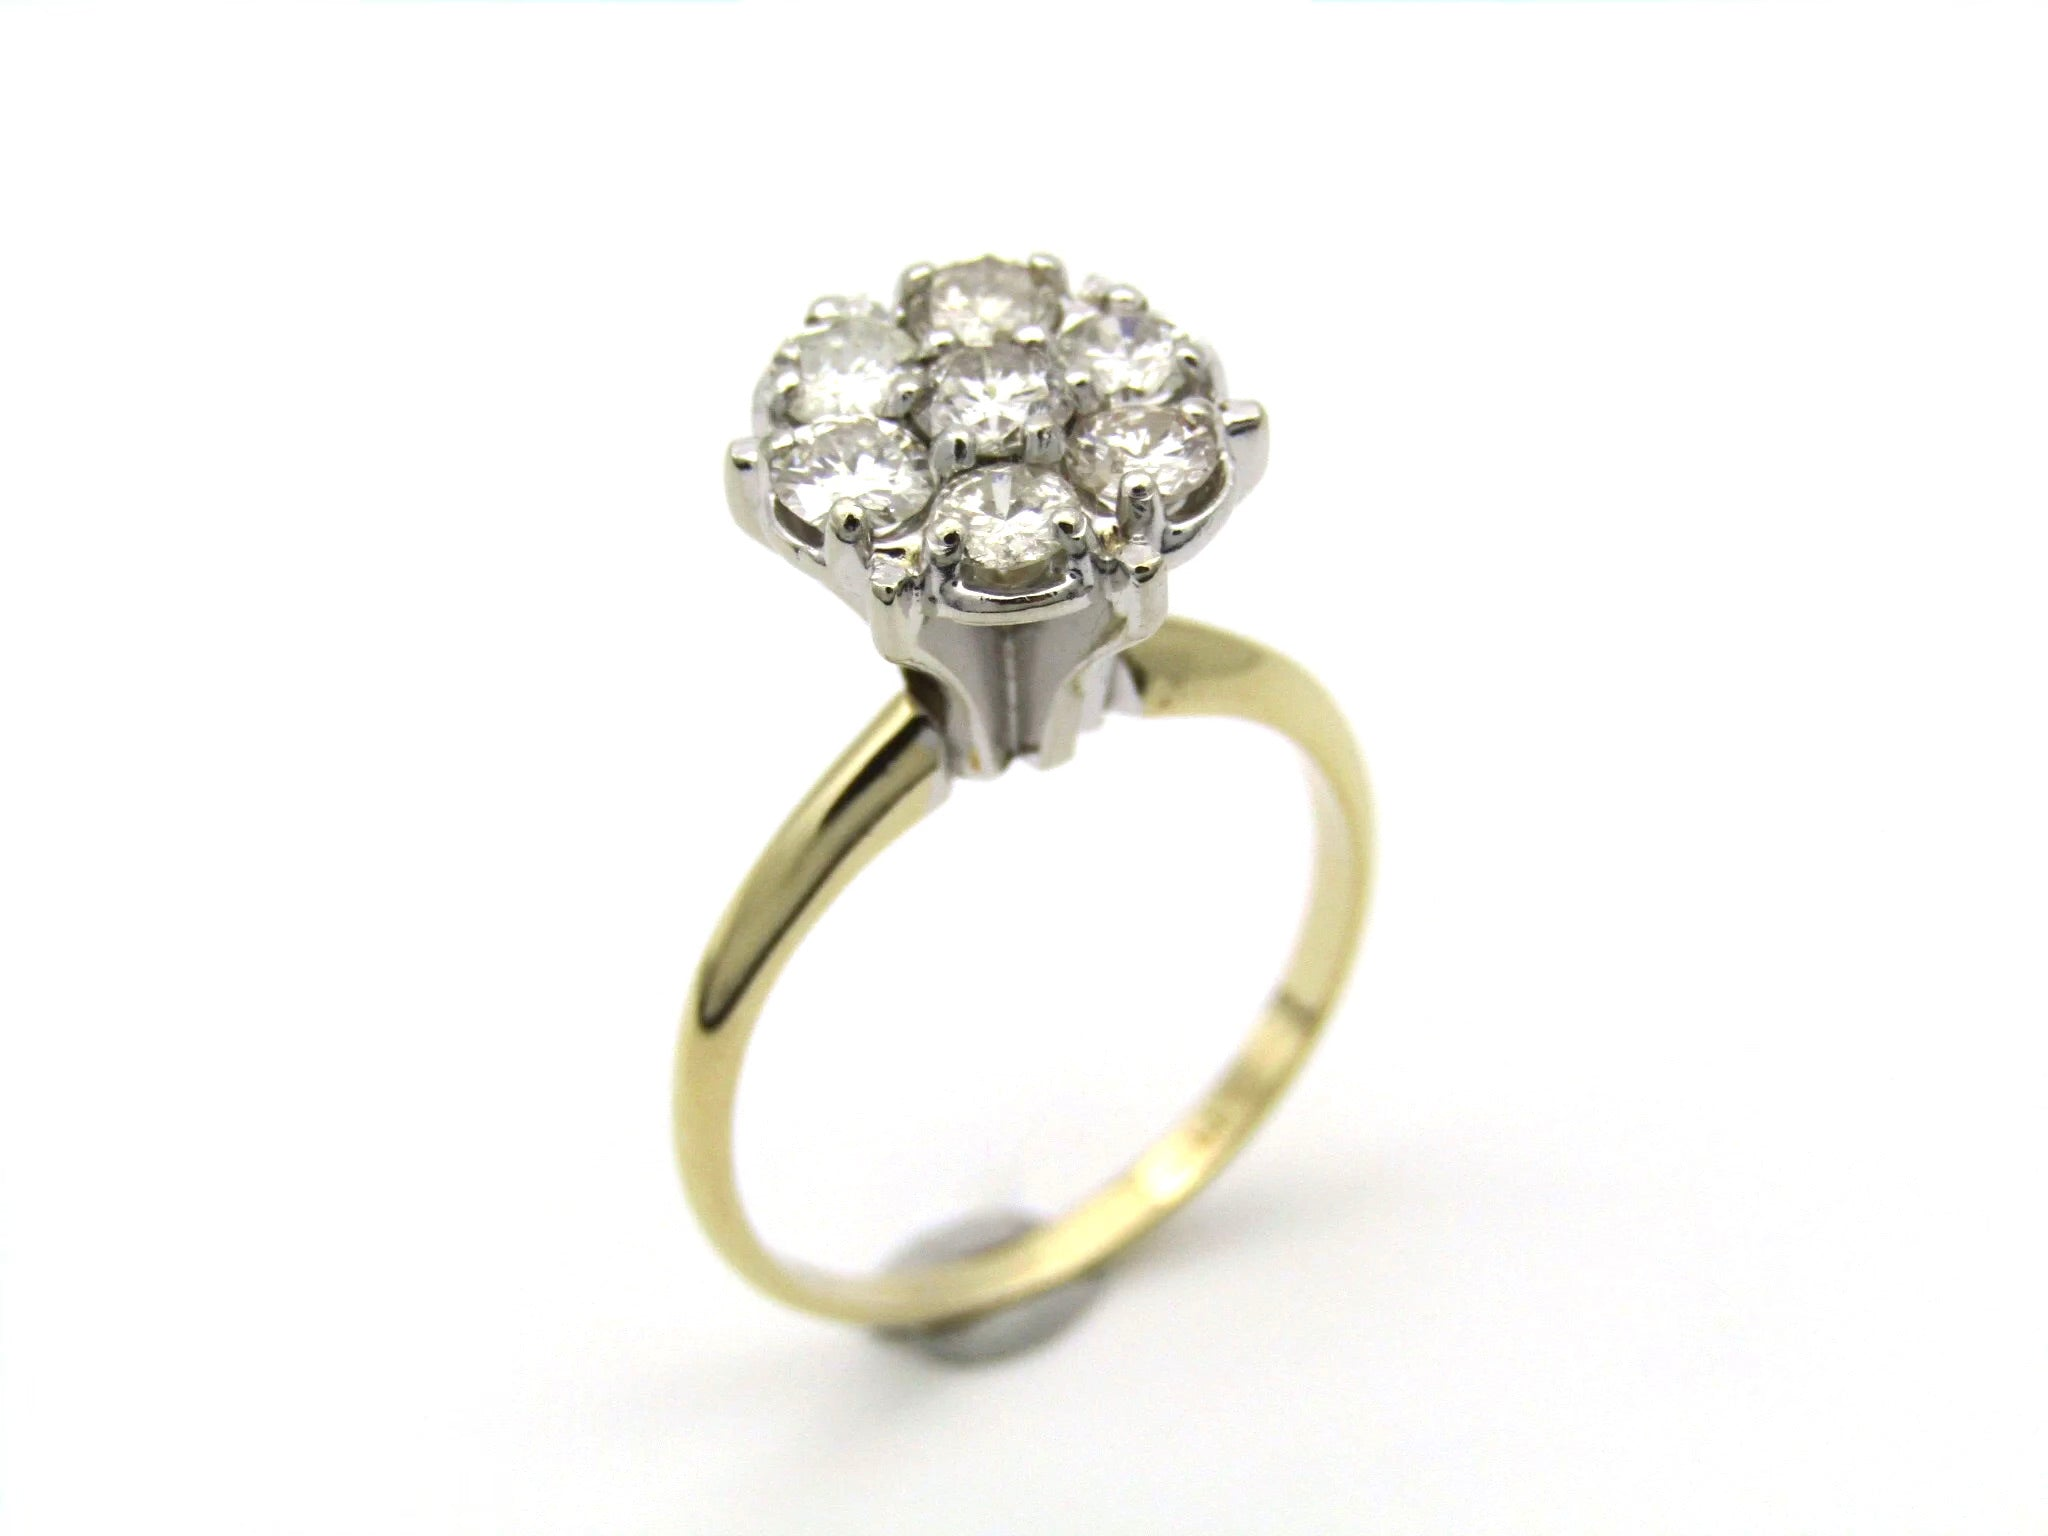 A Vintage 14K gold diamond cluster ring.